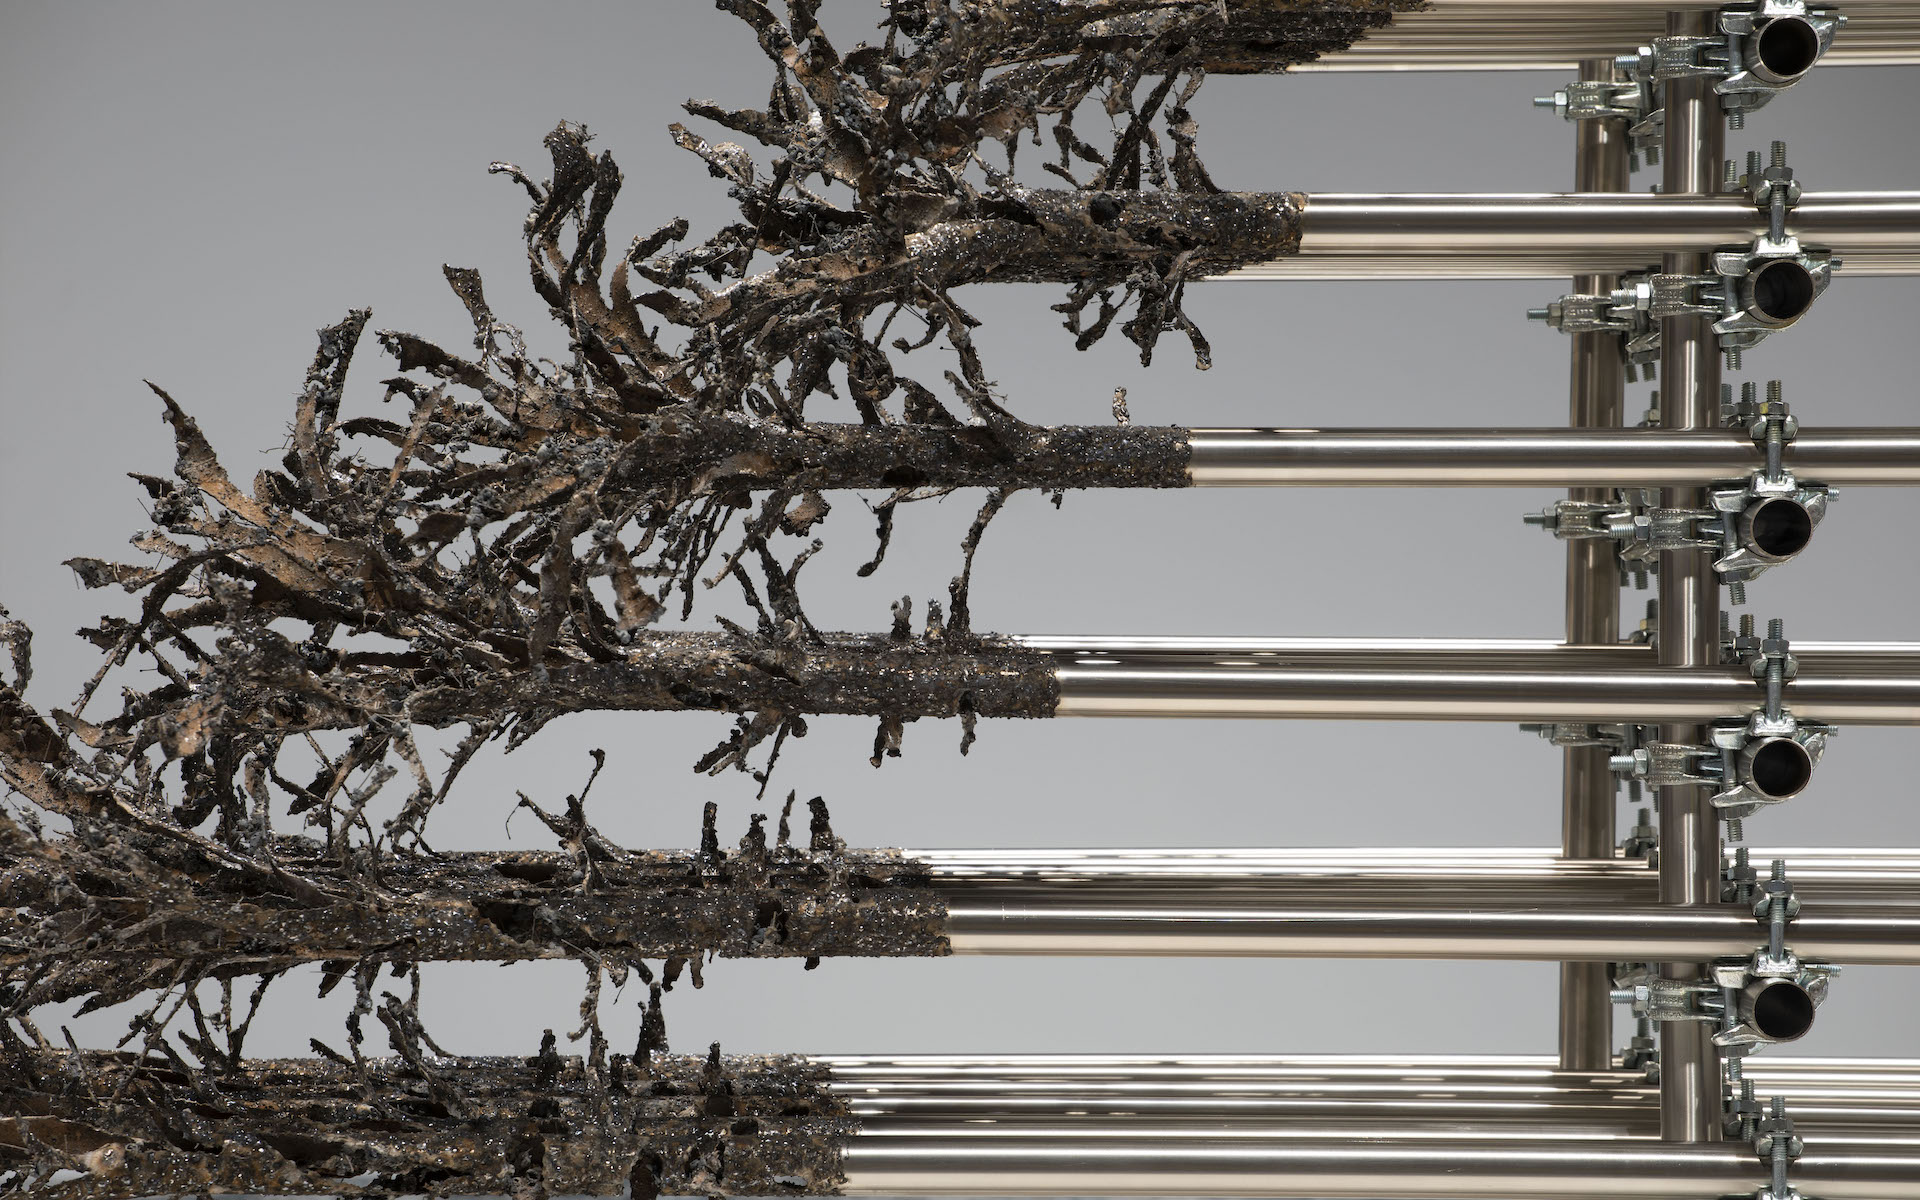 Brutal Ambivalence |2019 |Intervened steel pipes and clamps | 190 x 600 x 120 cm